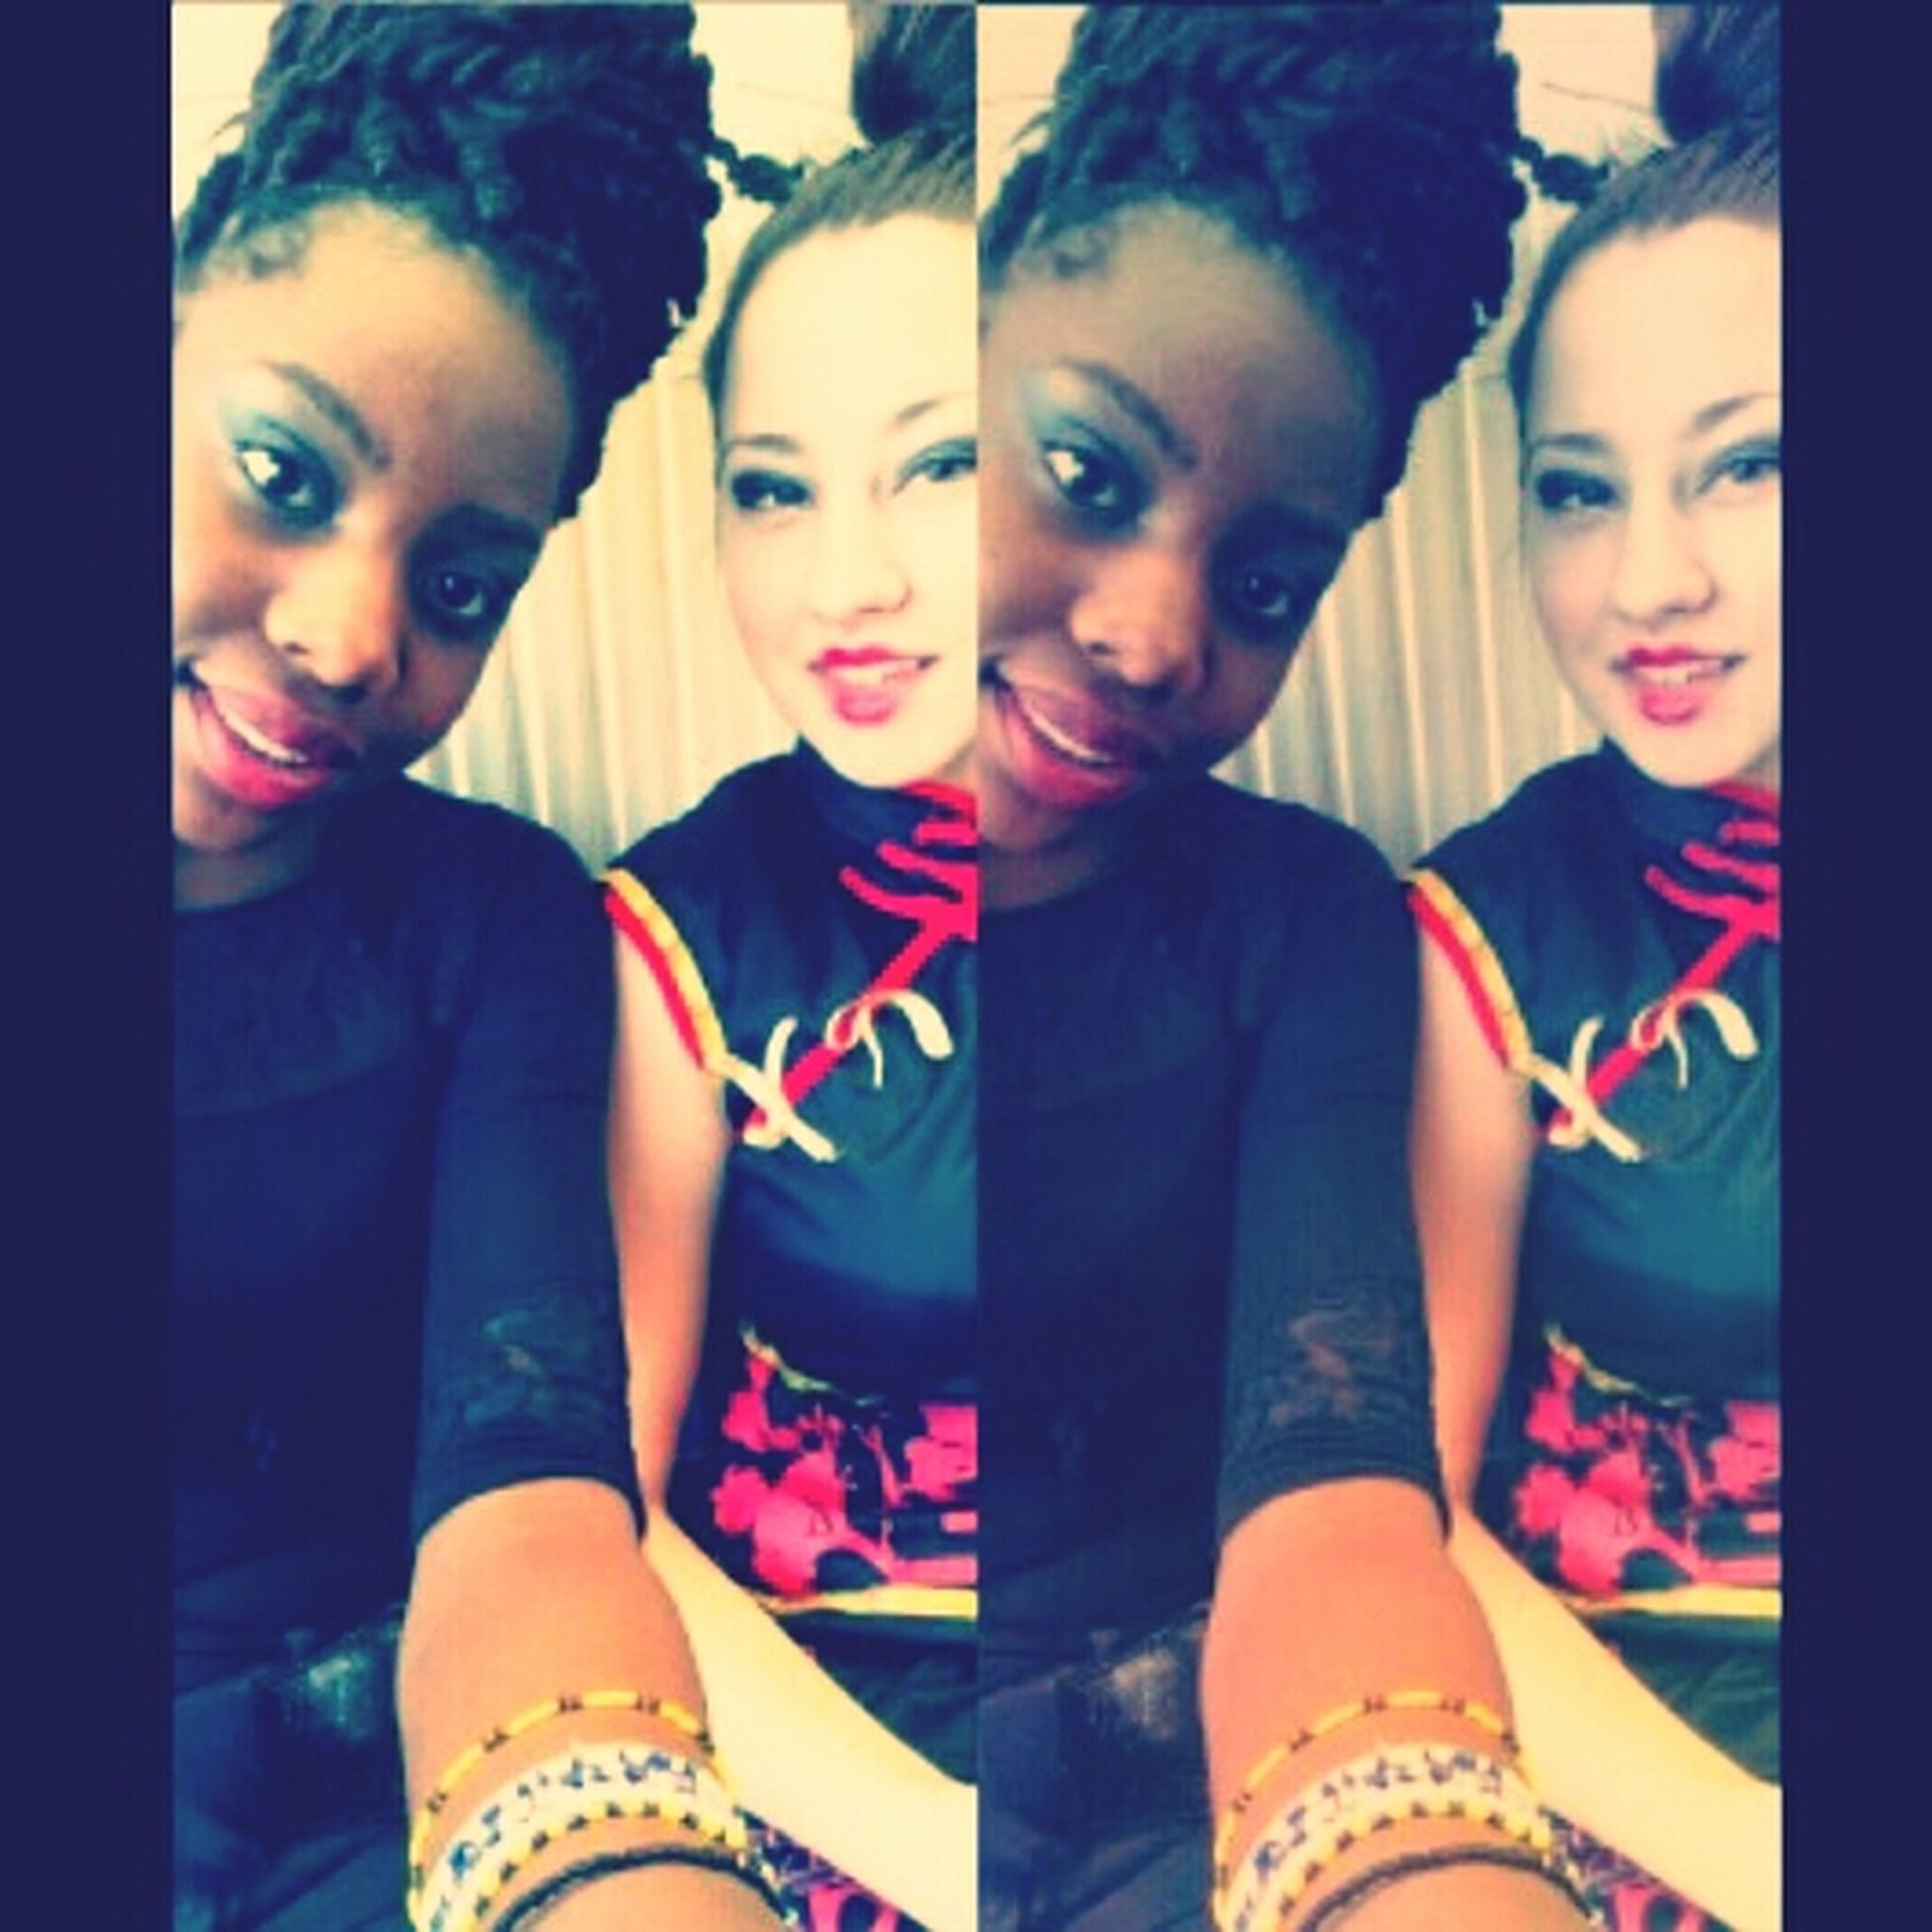 My love. Friend Carnaval Lycée Chinoises